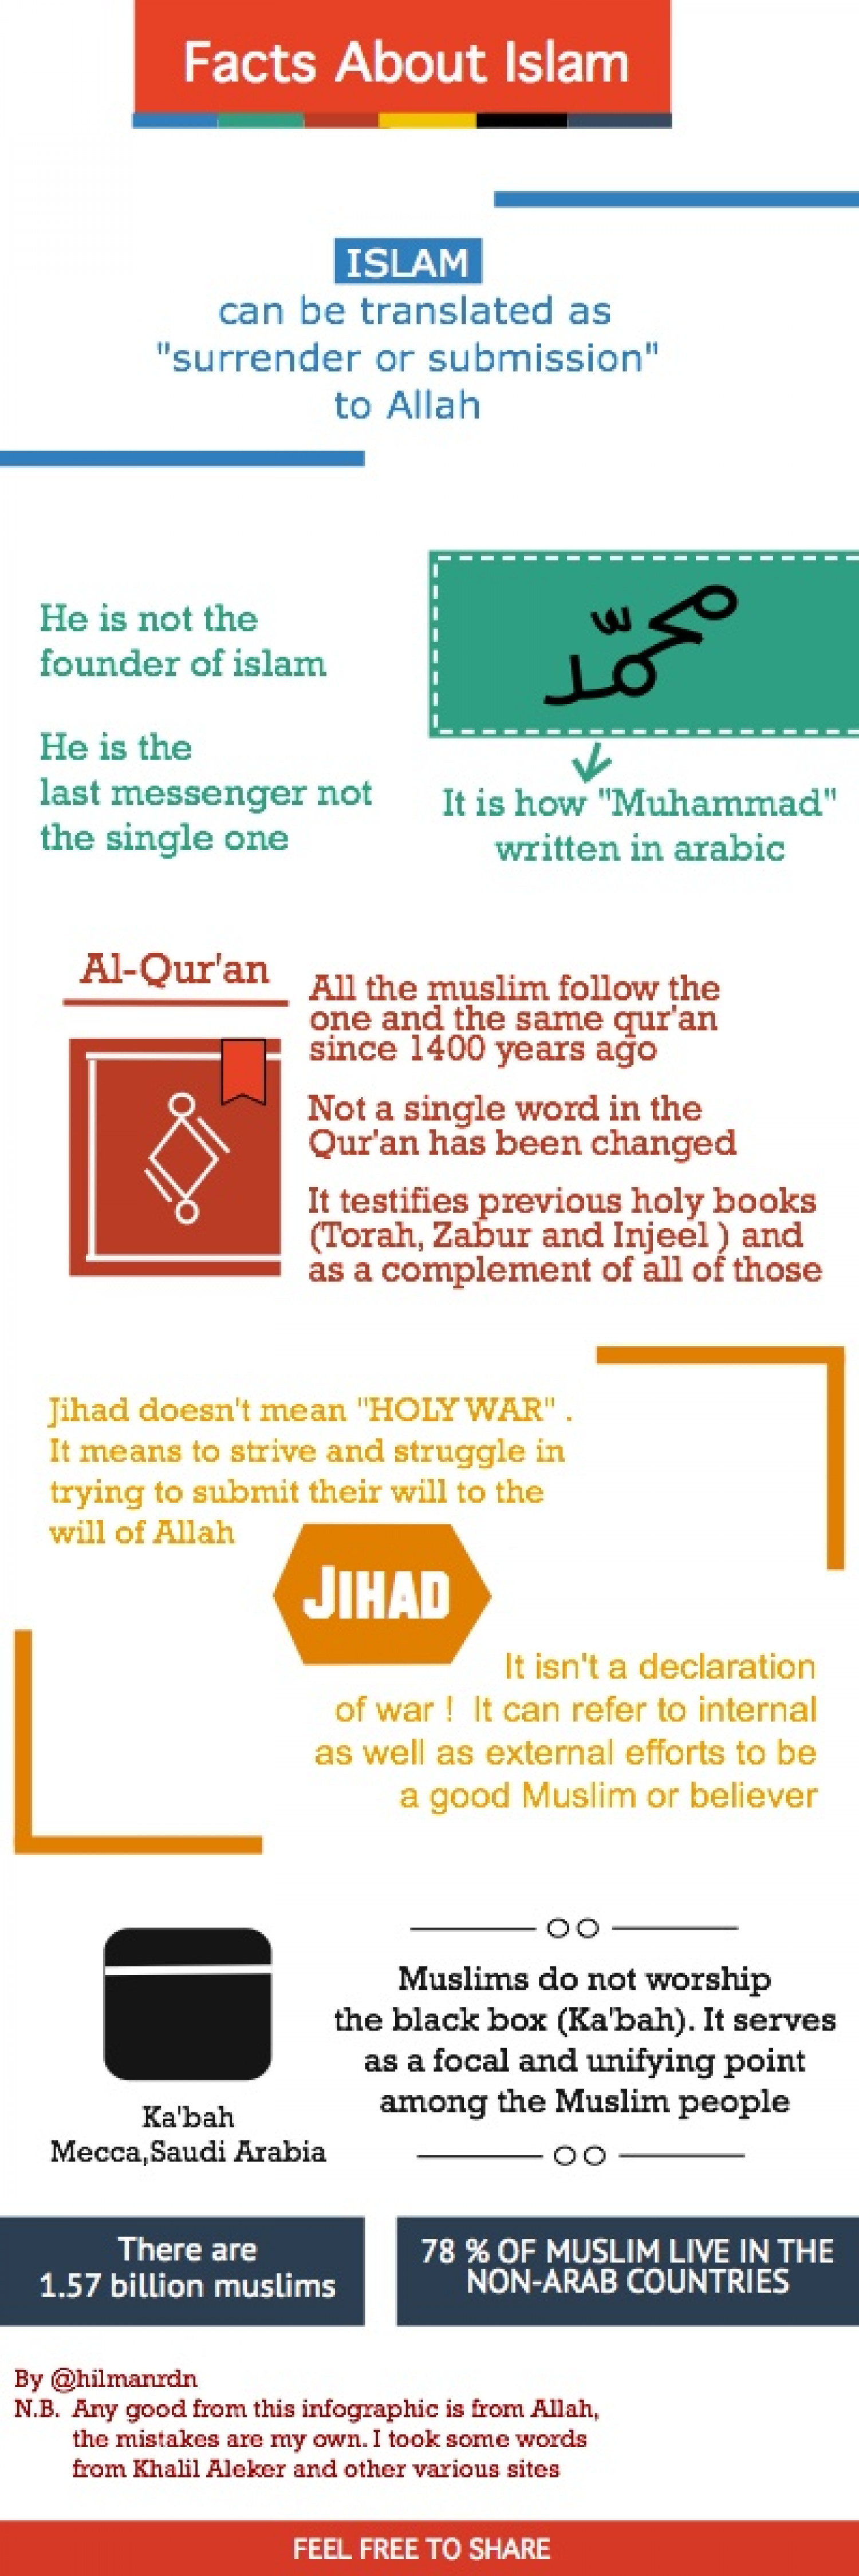 Facts about Islam Infographic